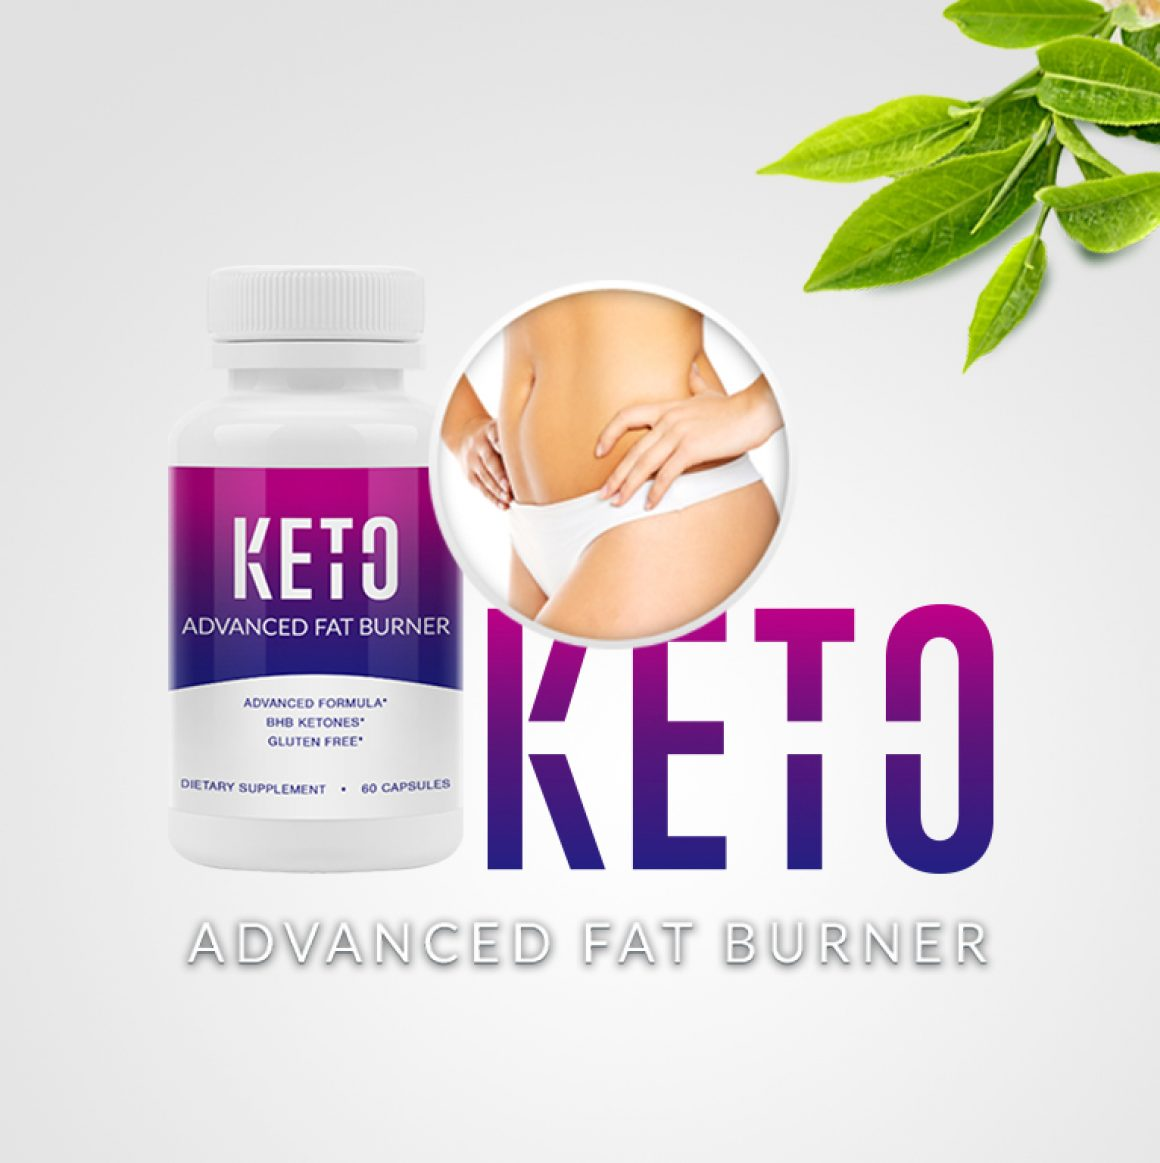 suplemento dietetico | Keto Advanced Beneficios, Precios y